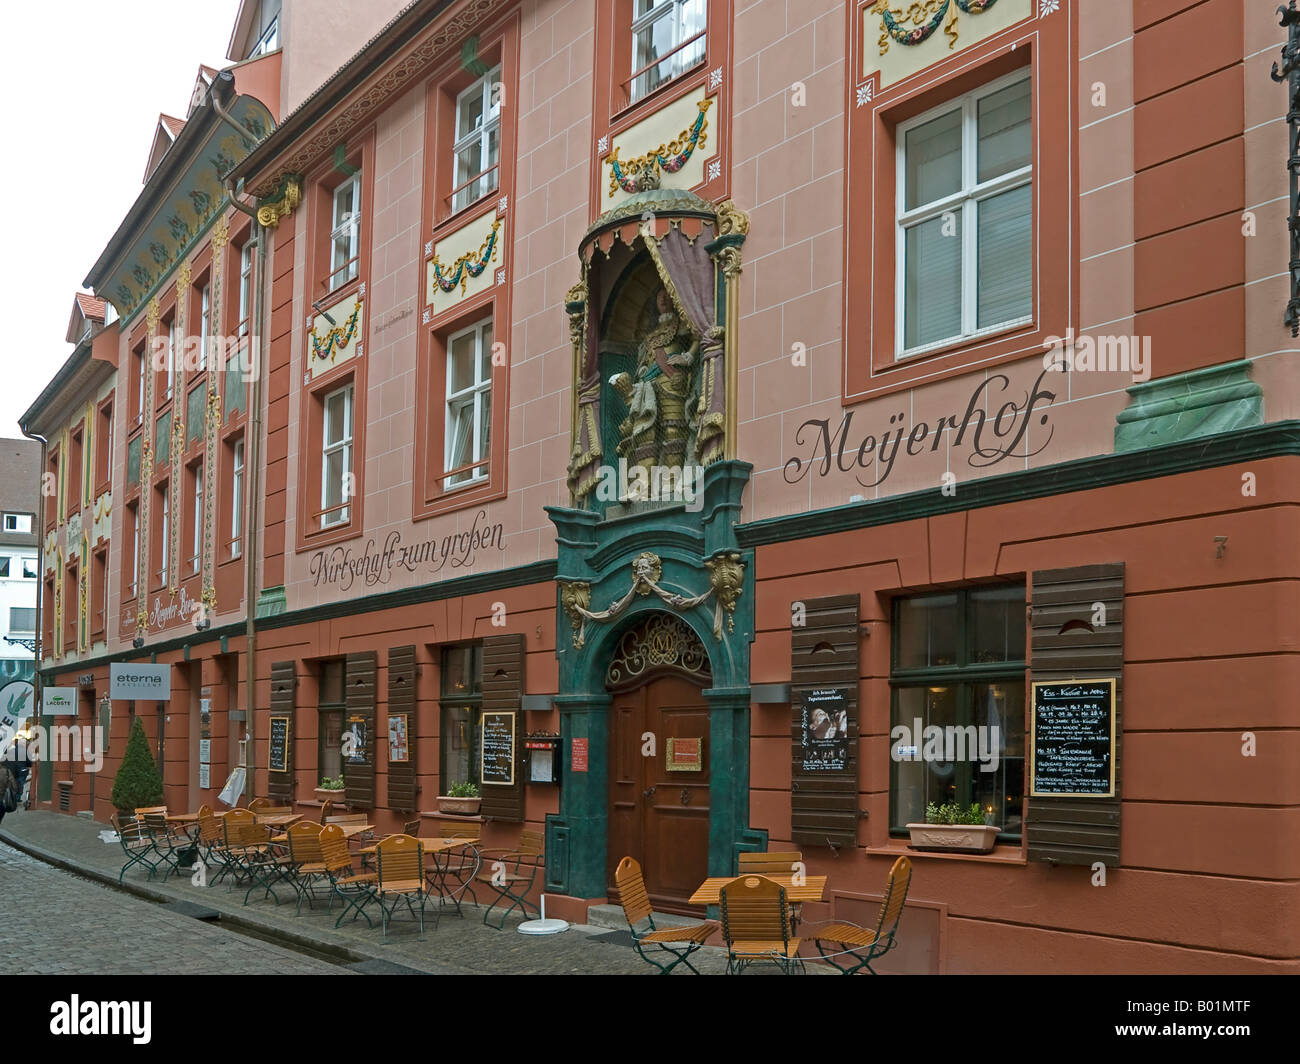 inn restaurant in an old baroque house Wirtschaft zum großen Meyerhof Street lane in the old town of Freiburg - Stock Image